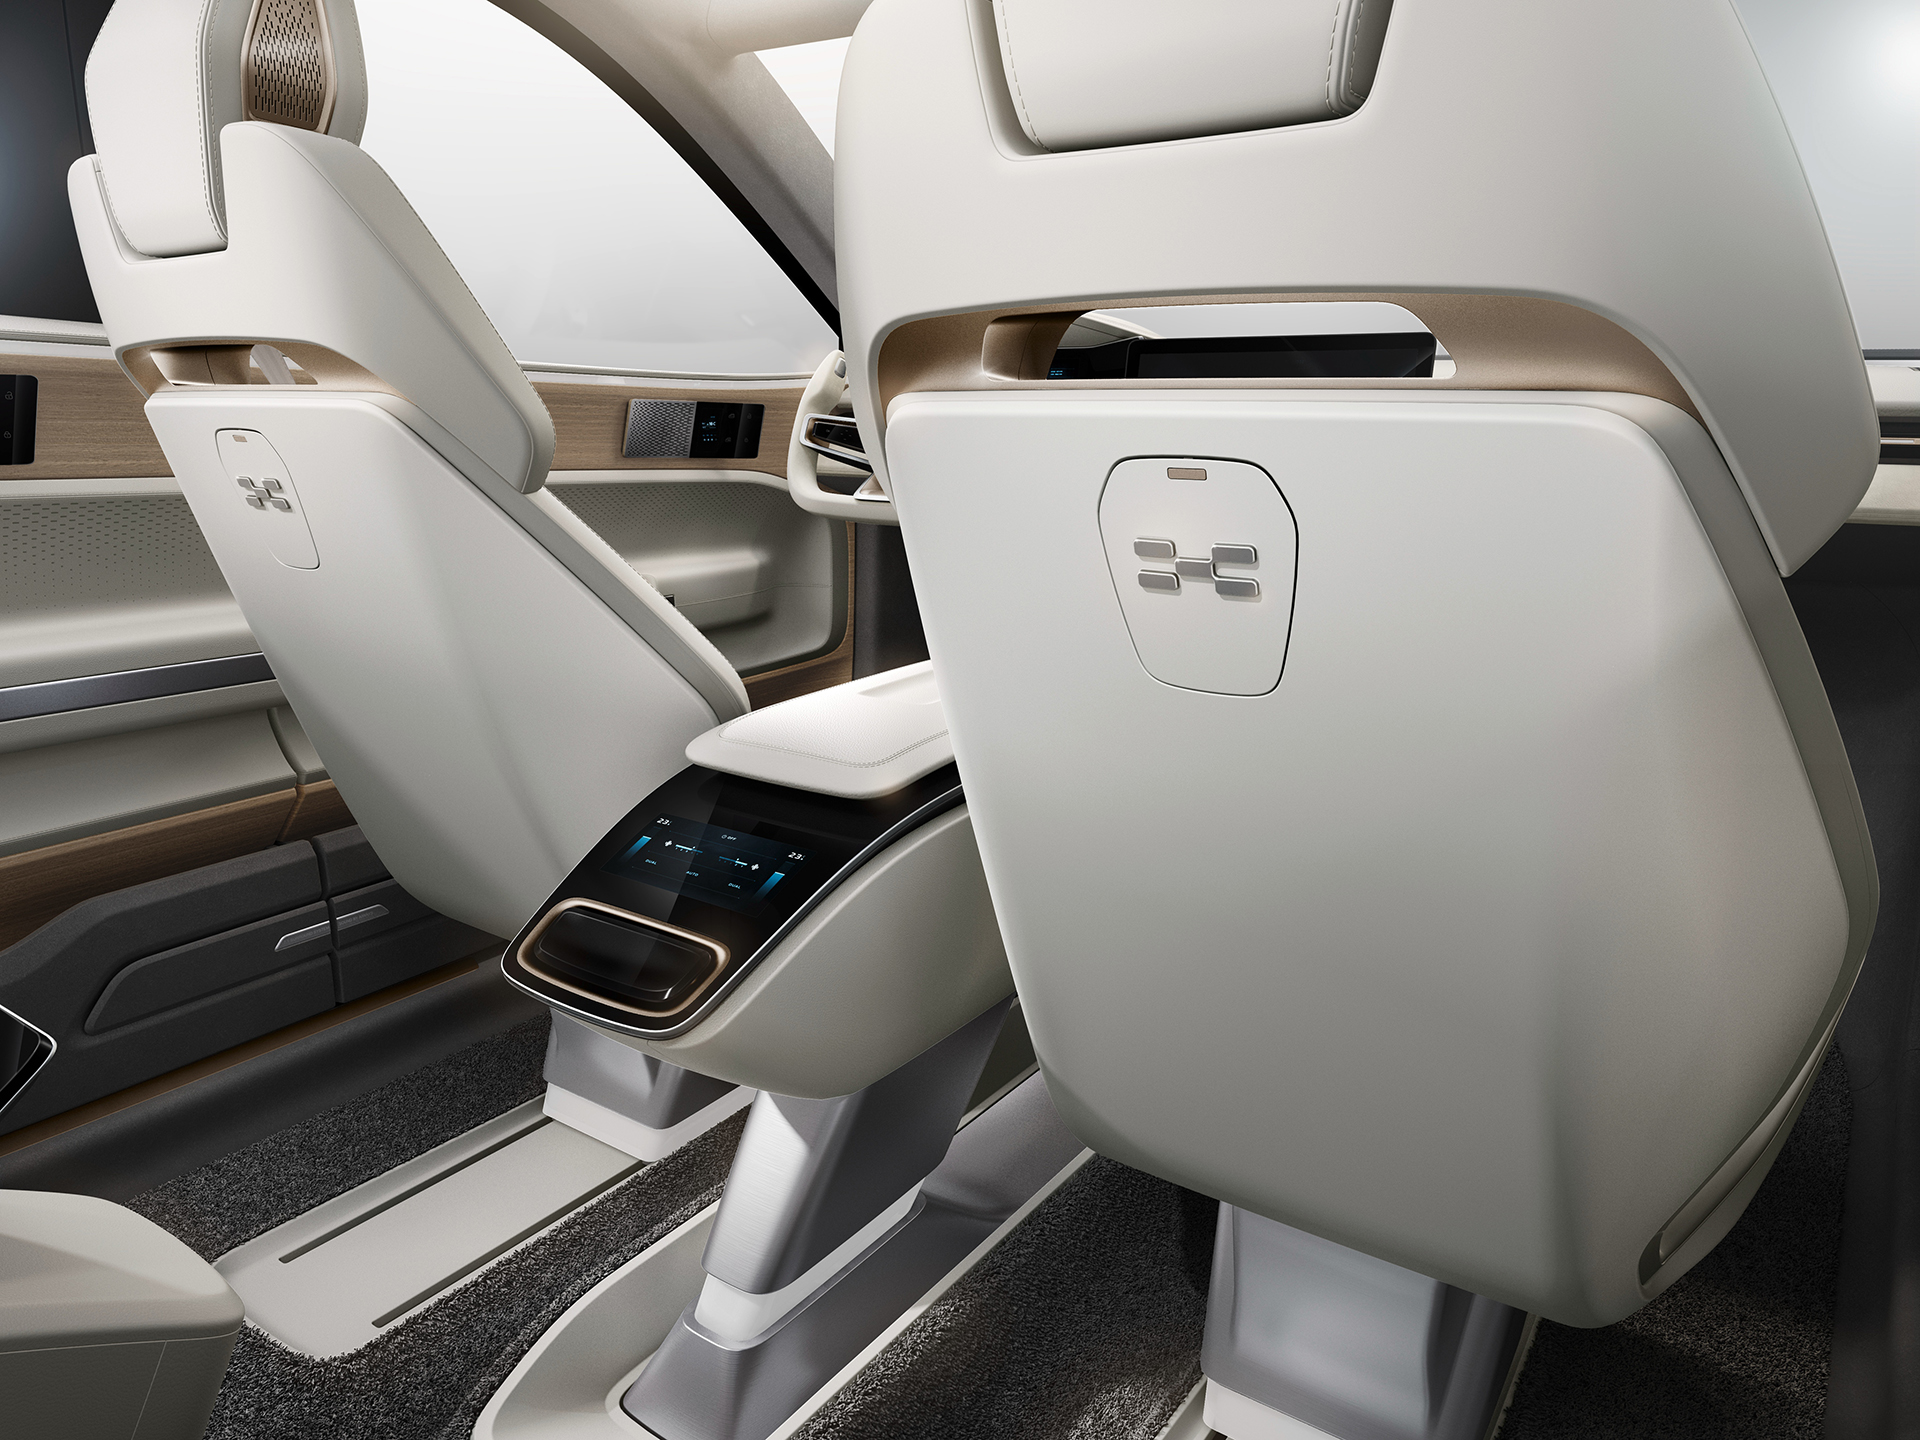 The luxury-looking seats of the Aiways U5